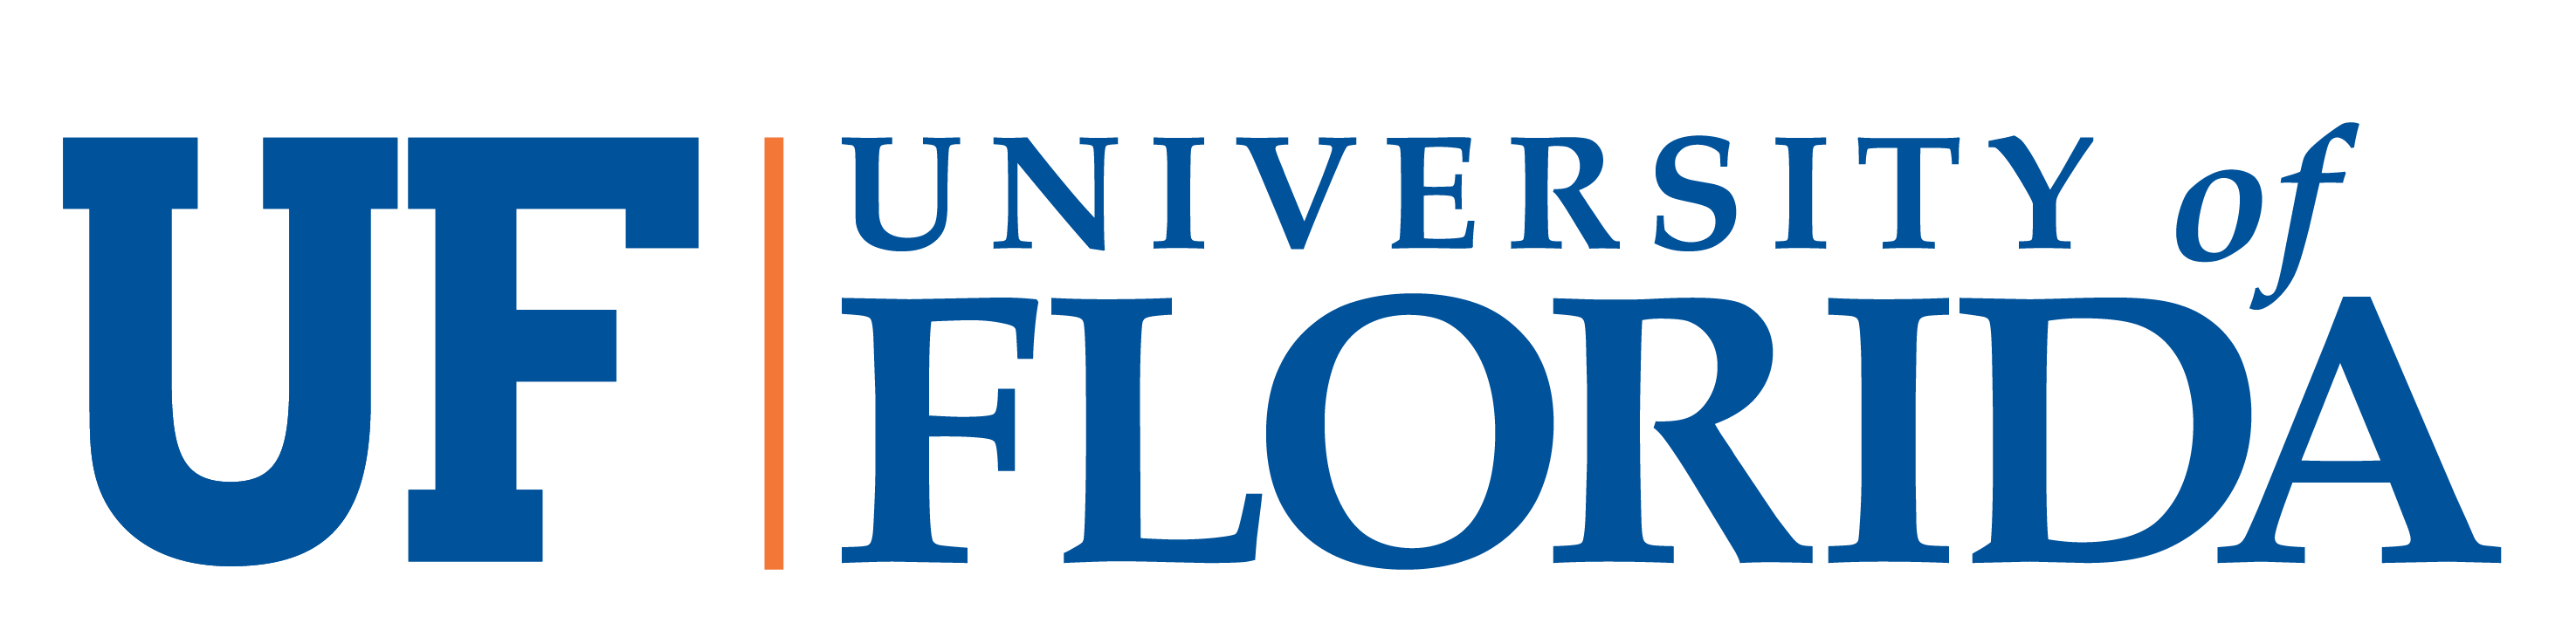 Uf logo png. Anita zucker center for